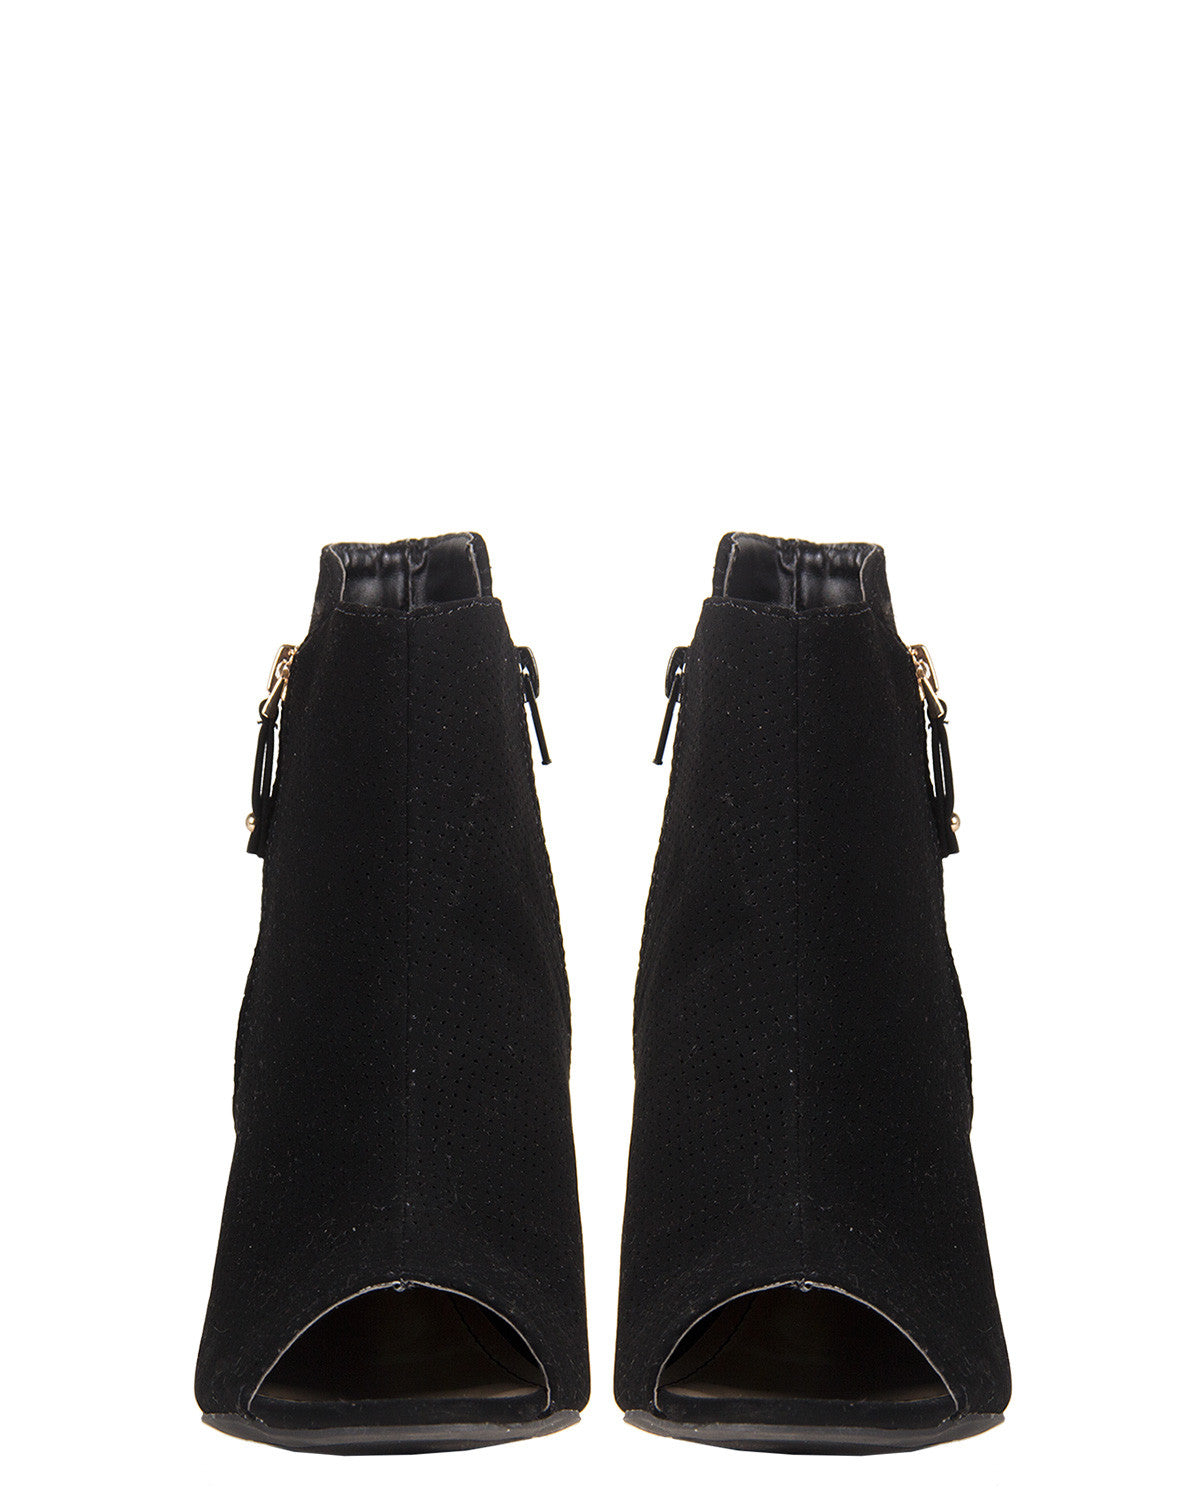 Side Zipper Open Toe Booties - Black Bamboo Abbatha-13 Black